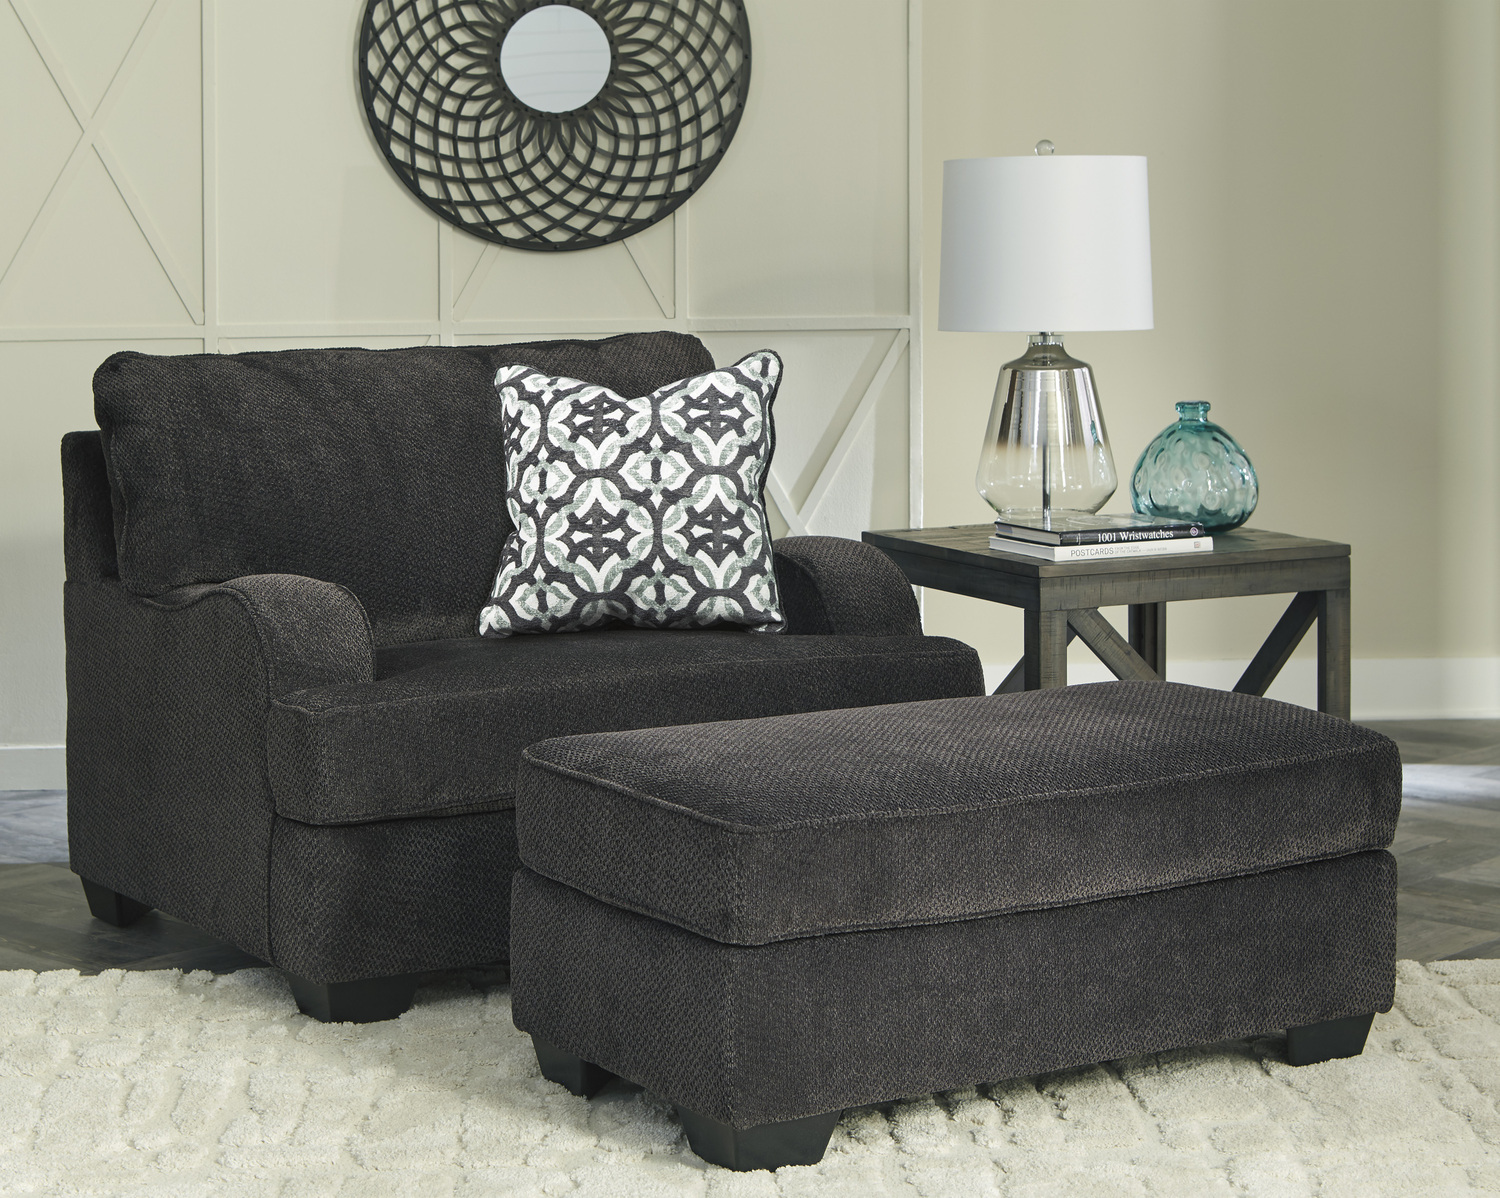 1410123ashley Furniture Chair And A Half Westco Home